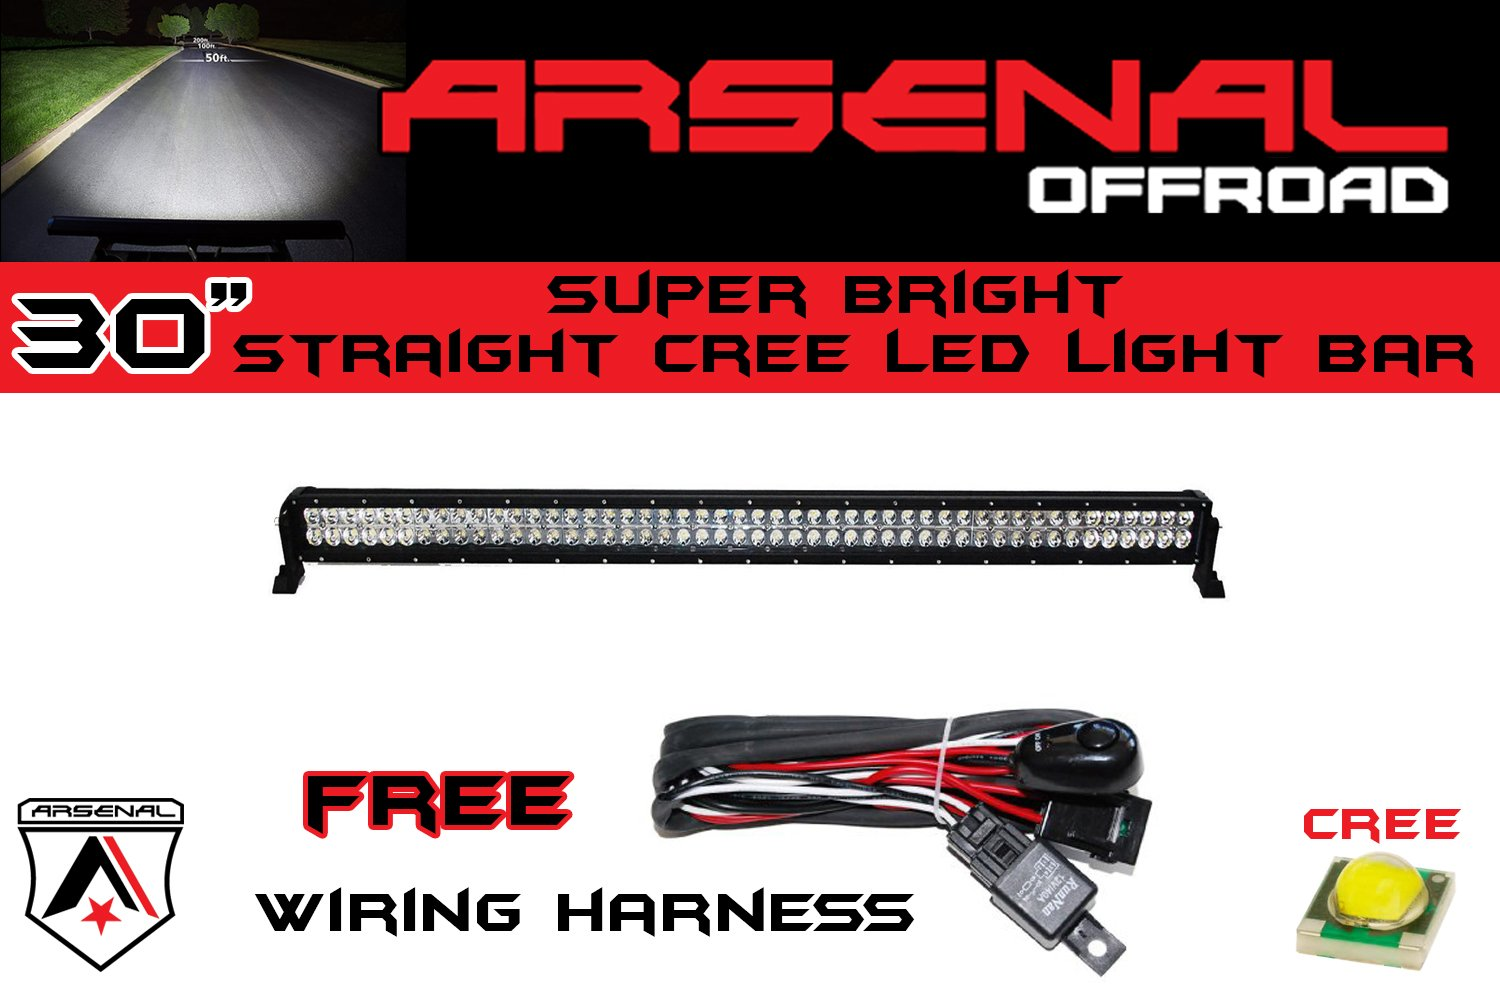 1 30 Arsenal Offroad Cree Led Light Bar Of Leds Do I Need A Wiring Harness For My Free Download Flood Spot Combo Beam 3w 180w 11250 Lumen Off Road Polaris Rzr Utv Trucks Raptor Jeep Bumper Rock Wire